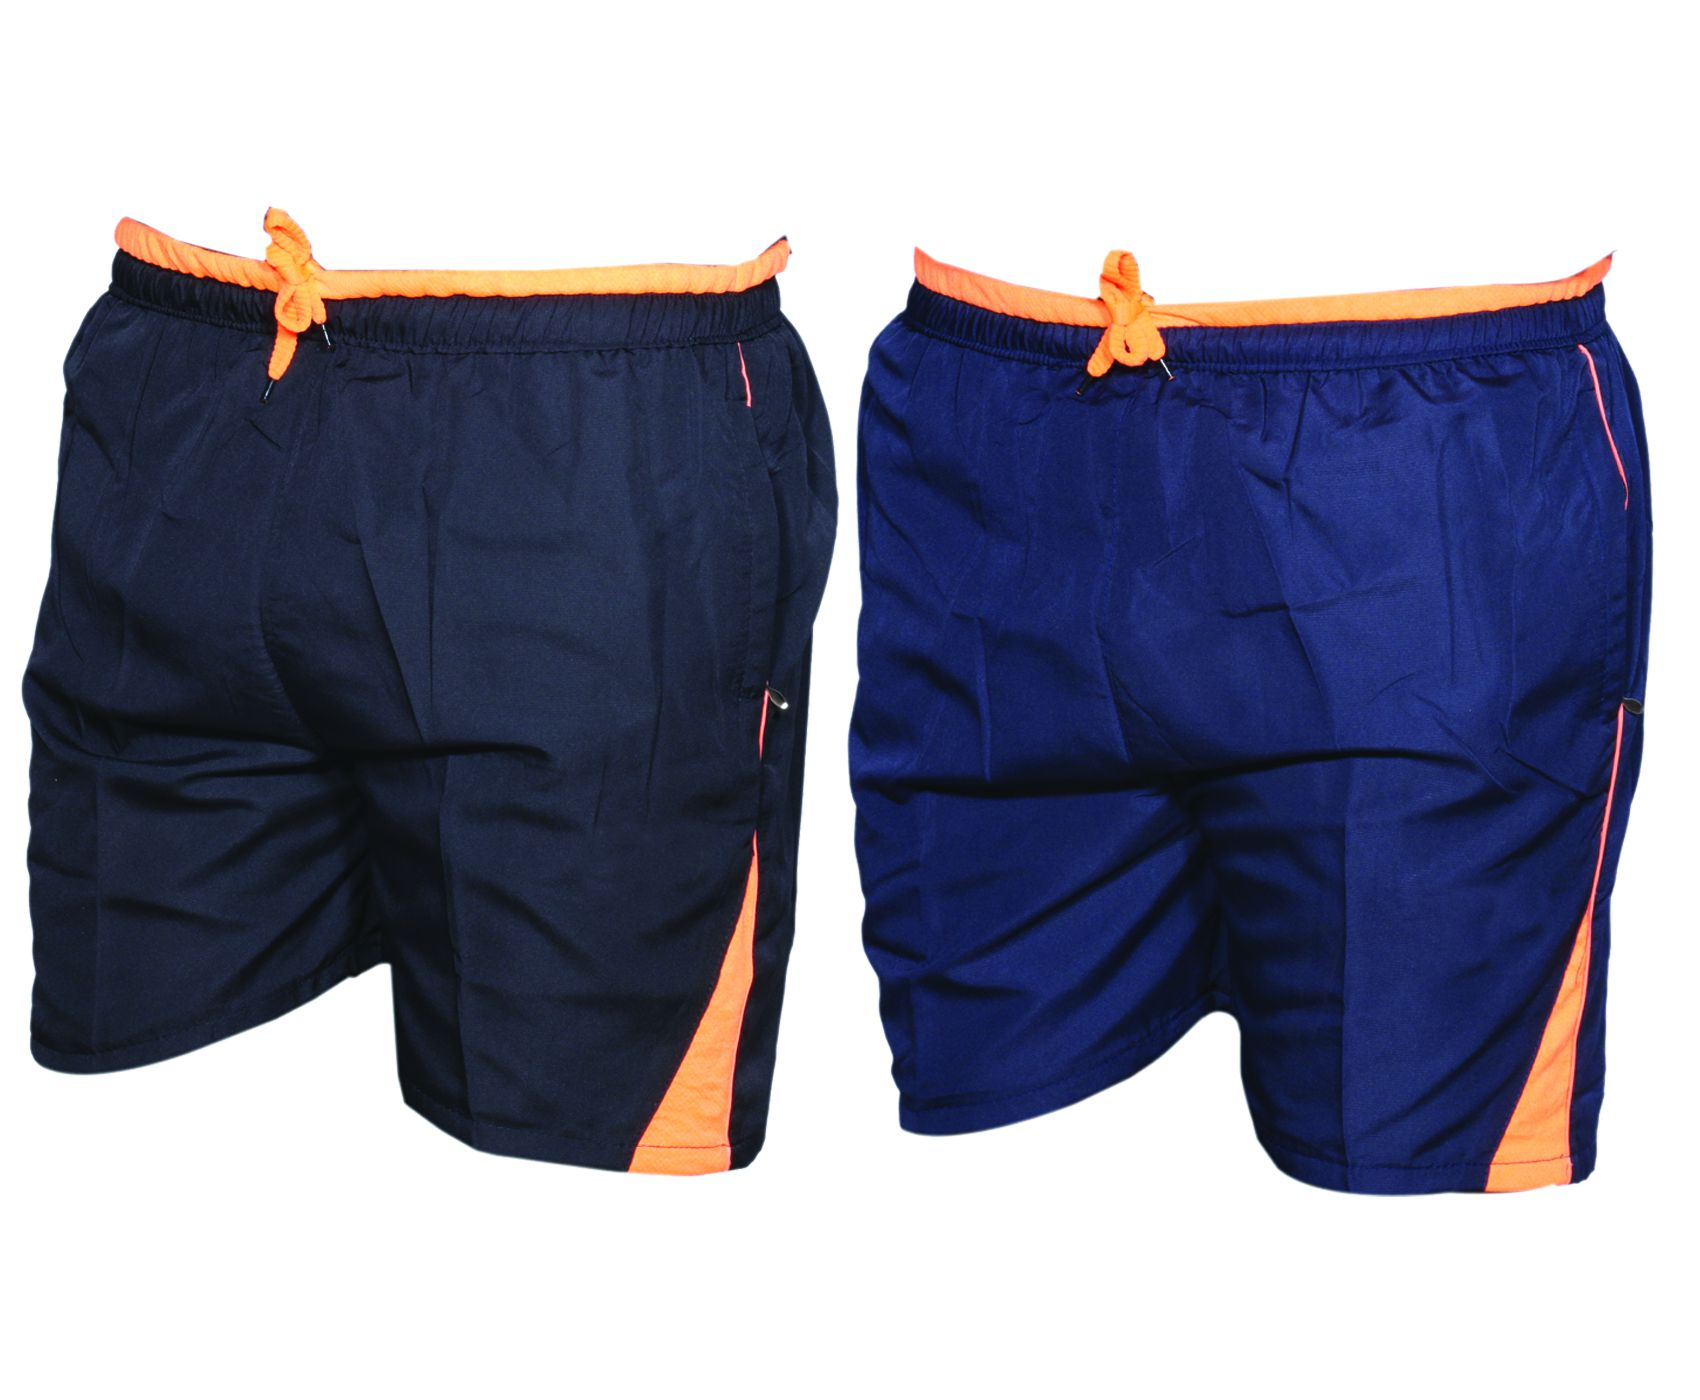 IndiWeaves Multi Shorts (Pack of 2 Sports Shorts/Bermuda)